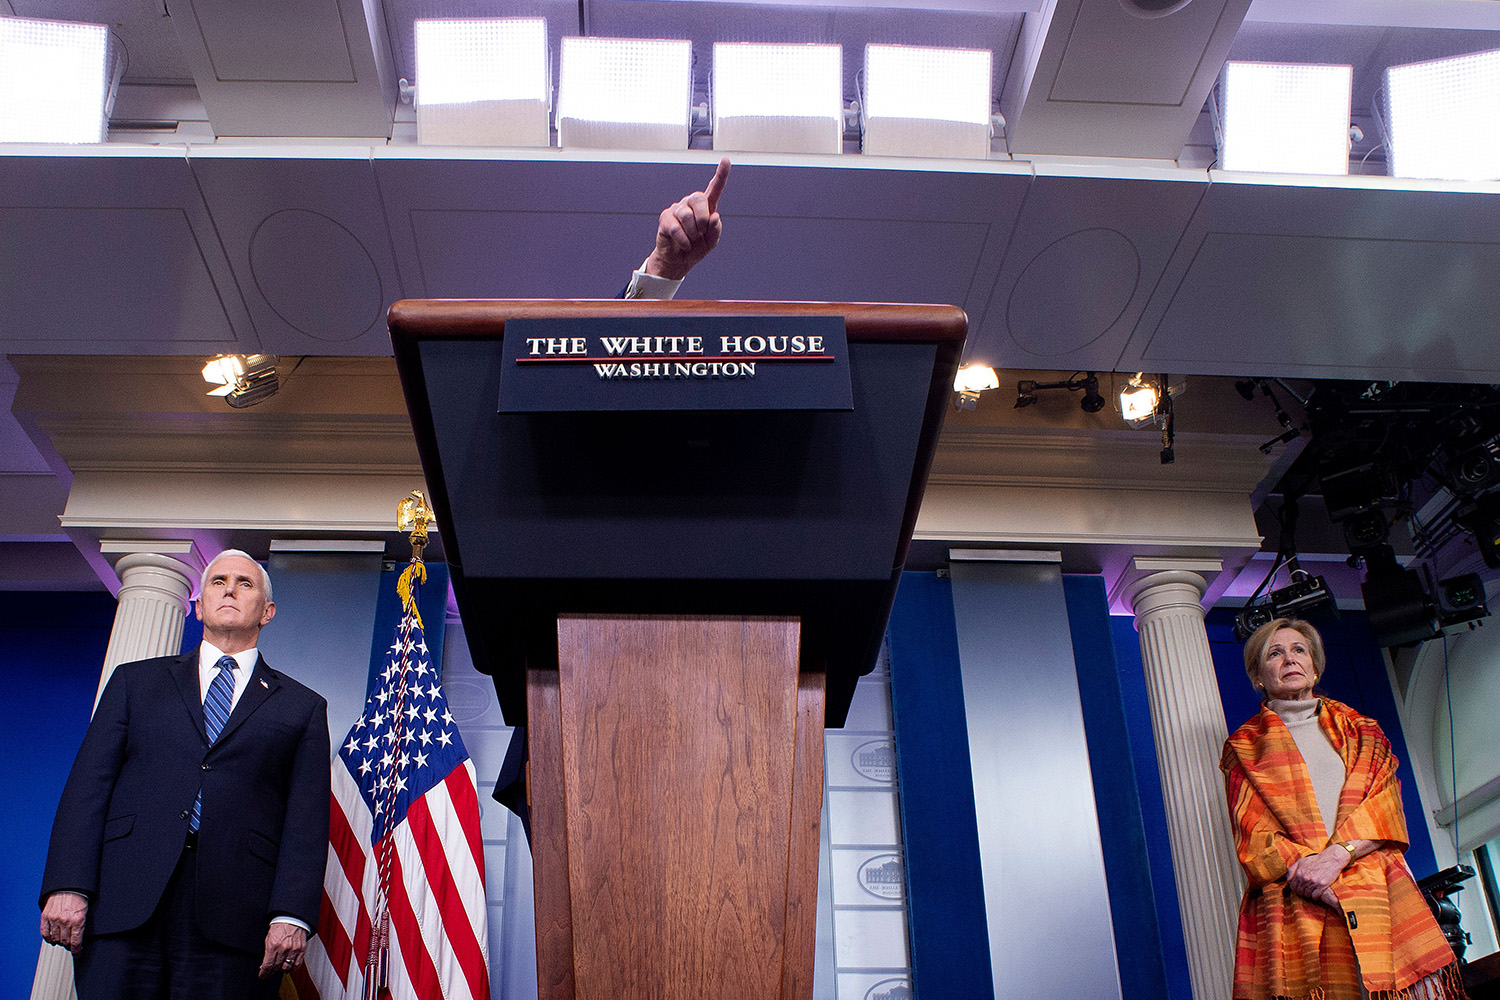 U.S. President Donald Trump gestures over the lectern as he speaks at a White House daily briefing April 3. He is flanked by Vice President Mike Pence and Deborah Birx, coordinator for the White House Coronavirus Task Force. JIM WATSON/AFP via Getty Images